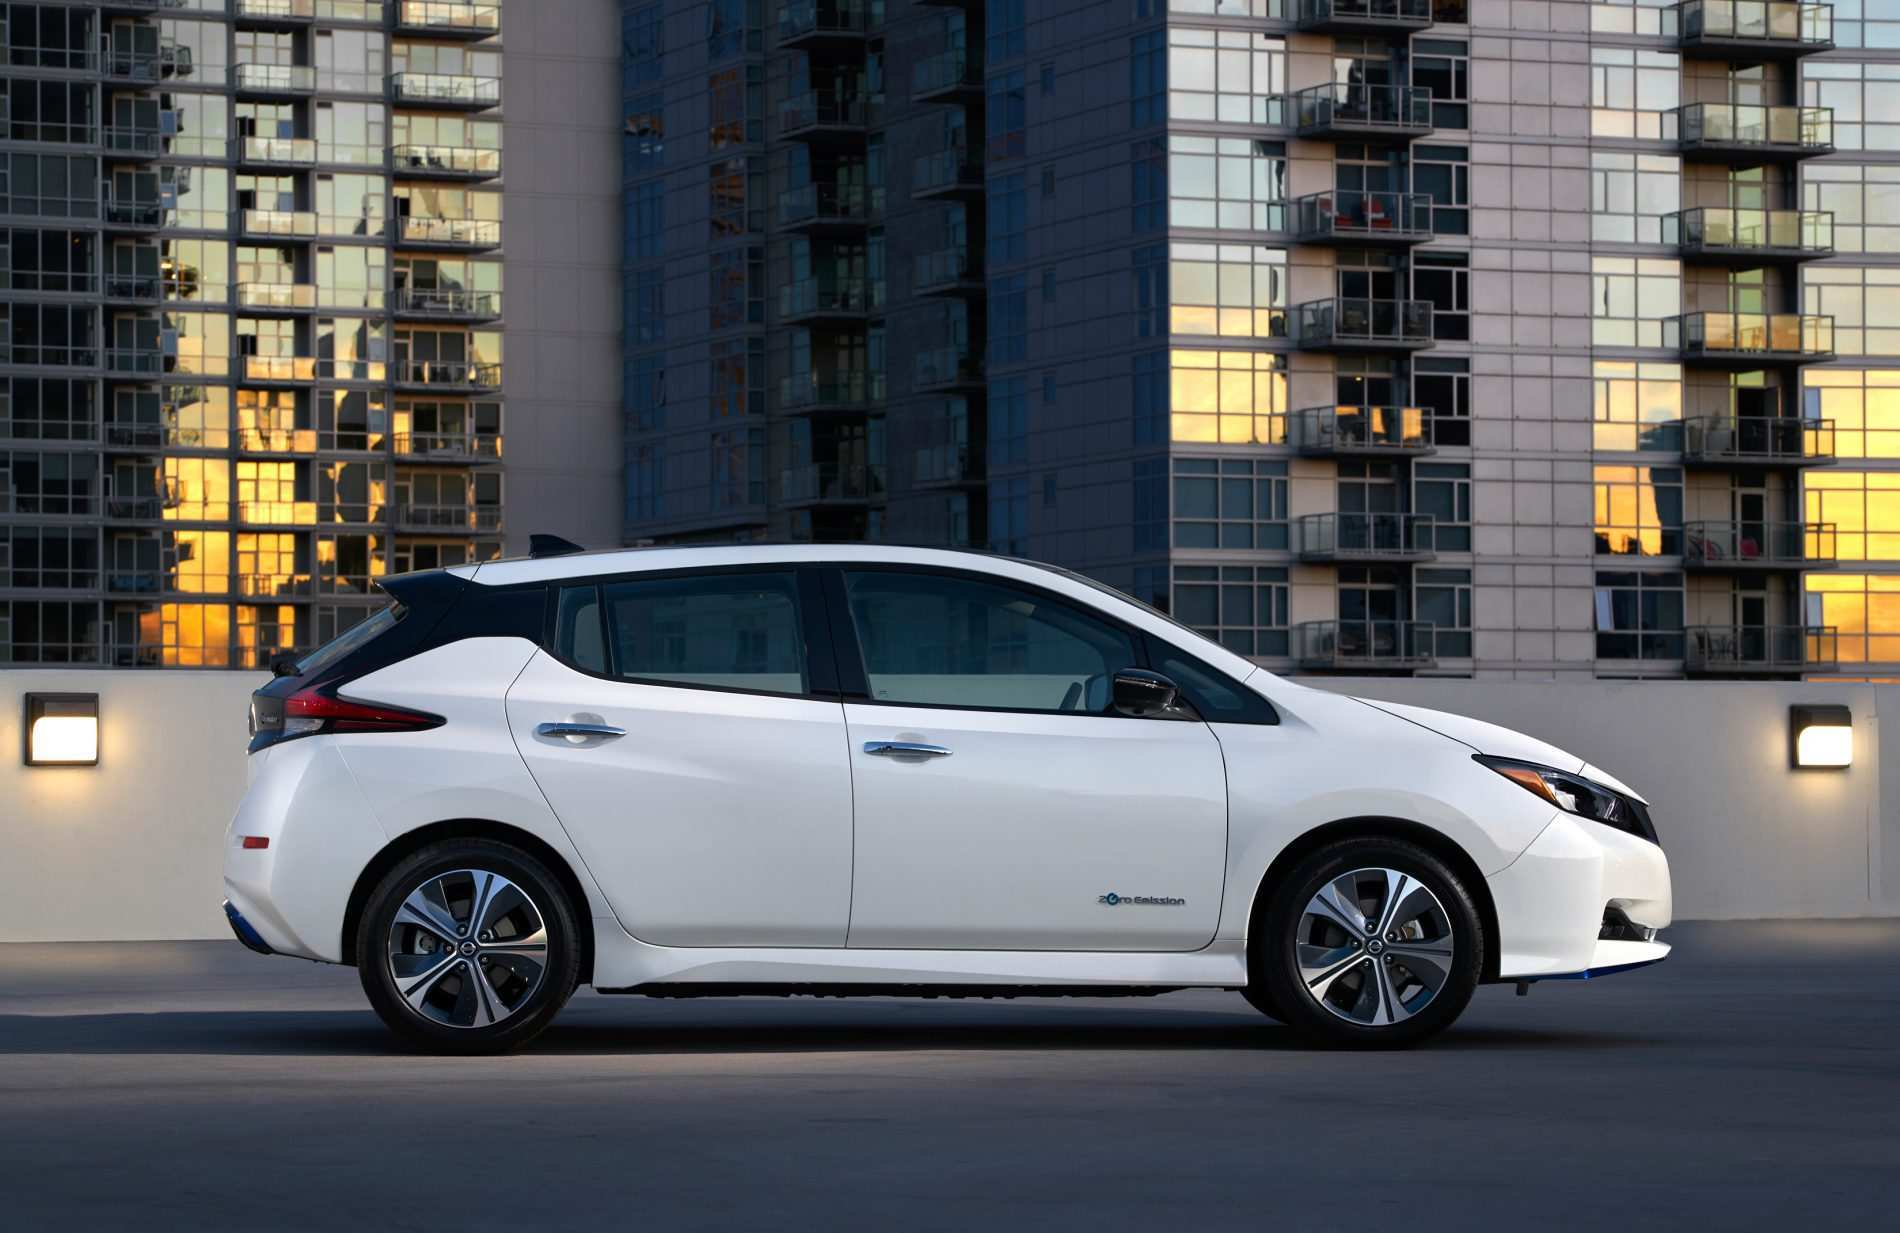 18 Gallery of 2020 Nissan Leaf E Plus First Drive for 2020 Nissan Leaf E Plus